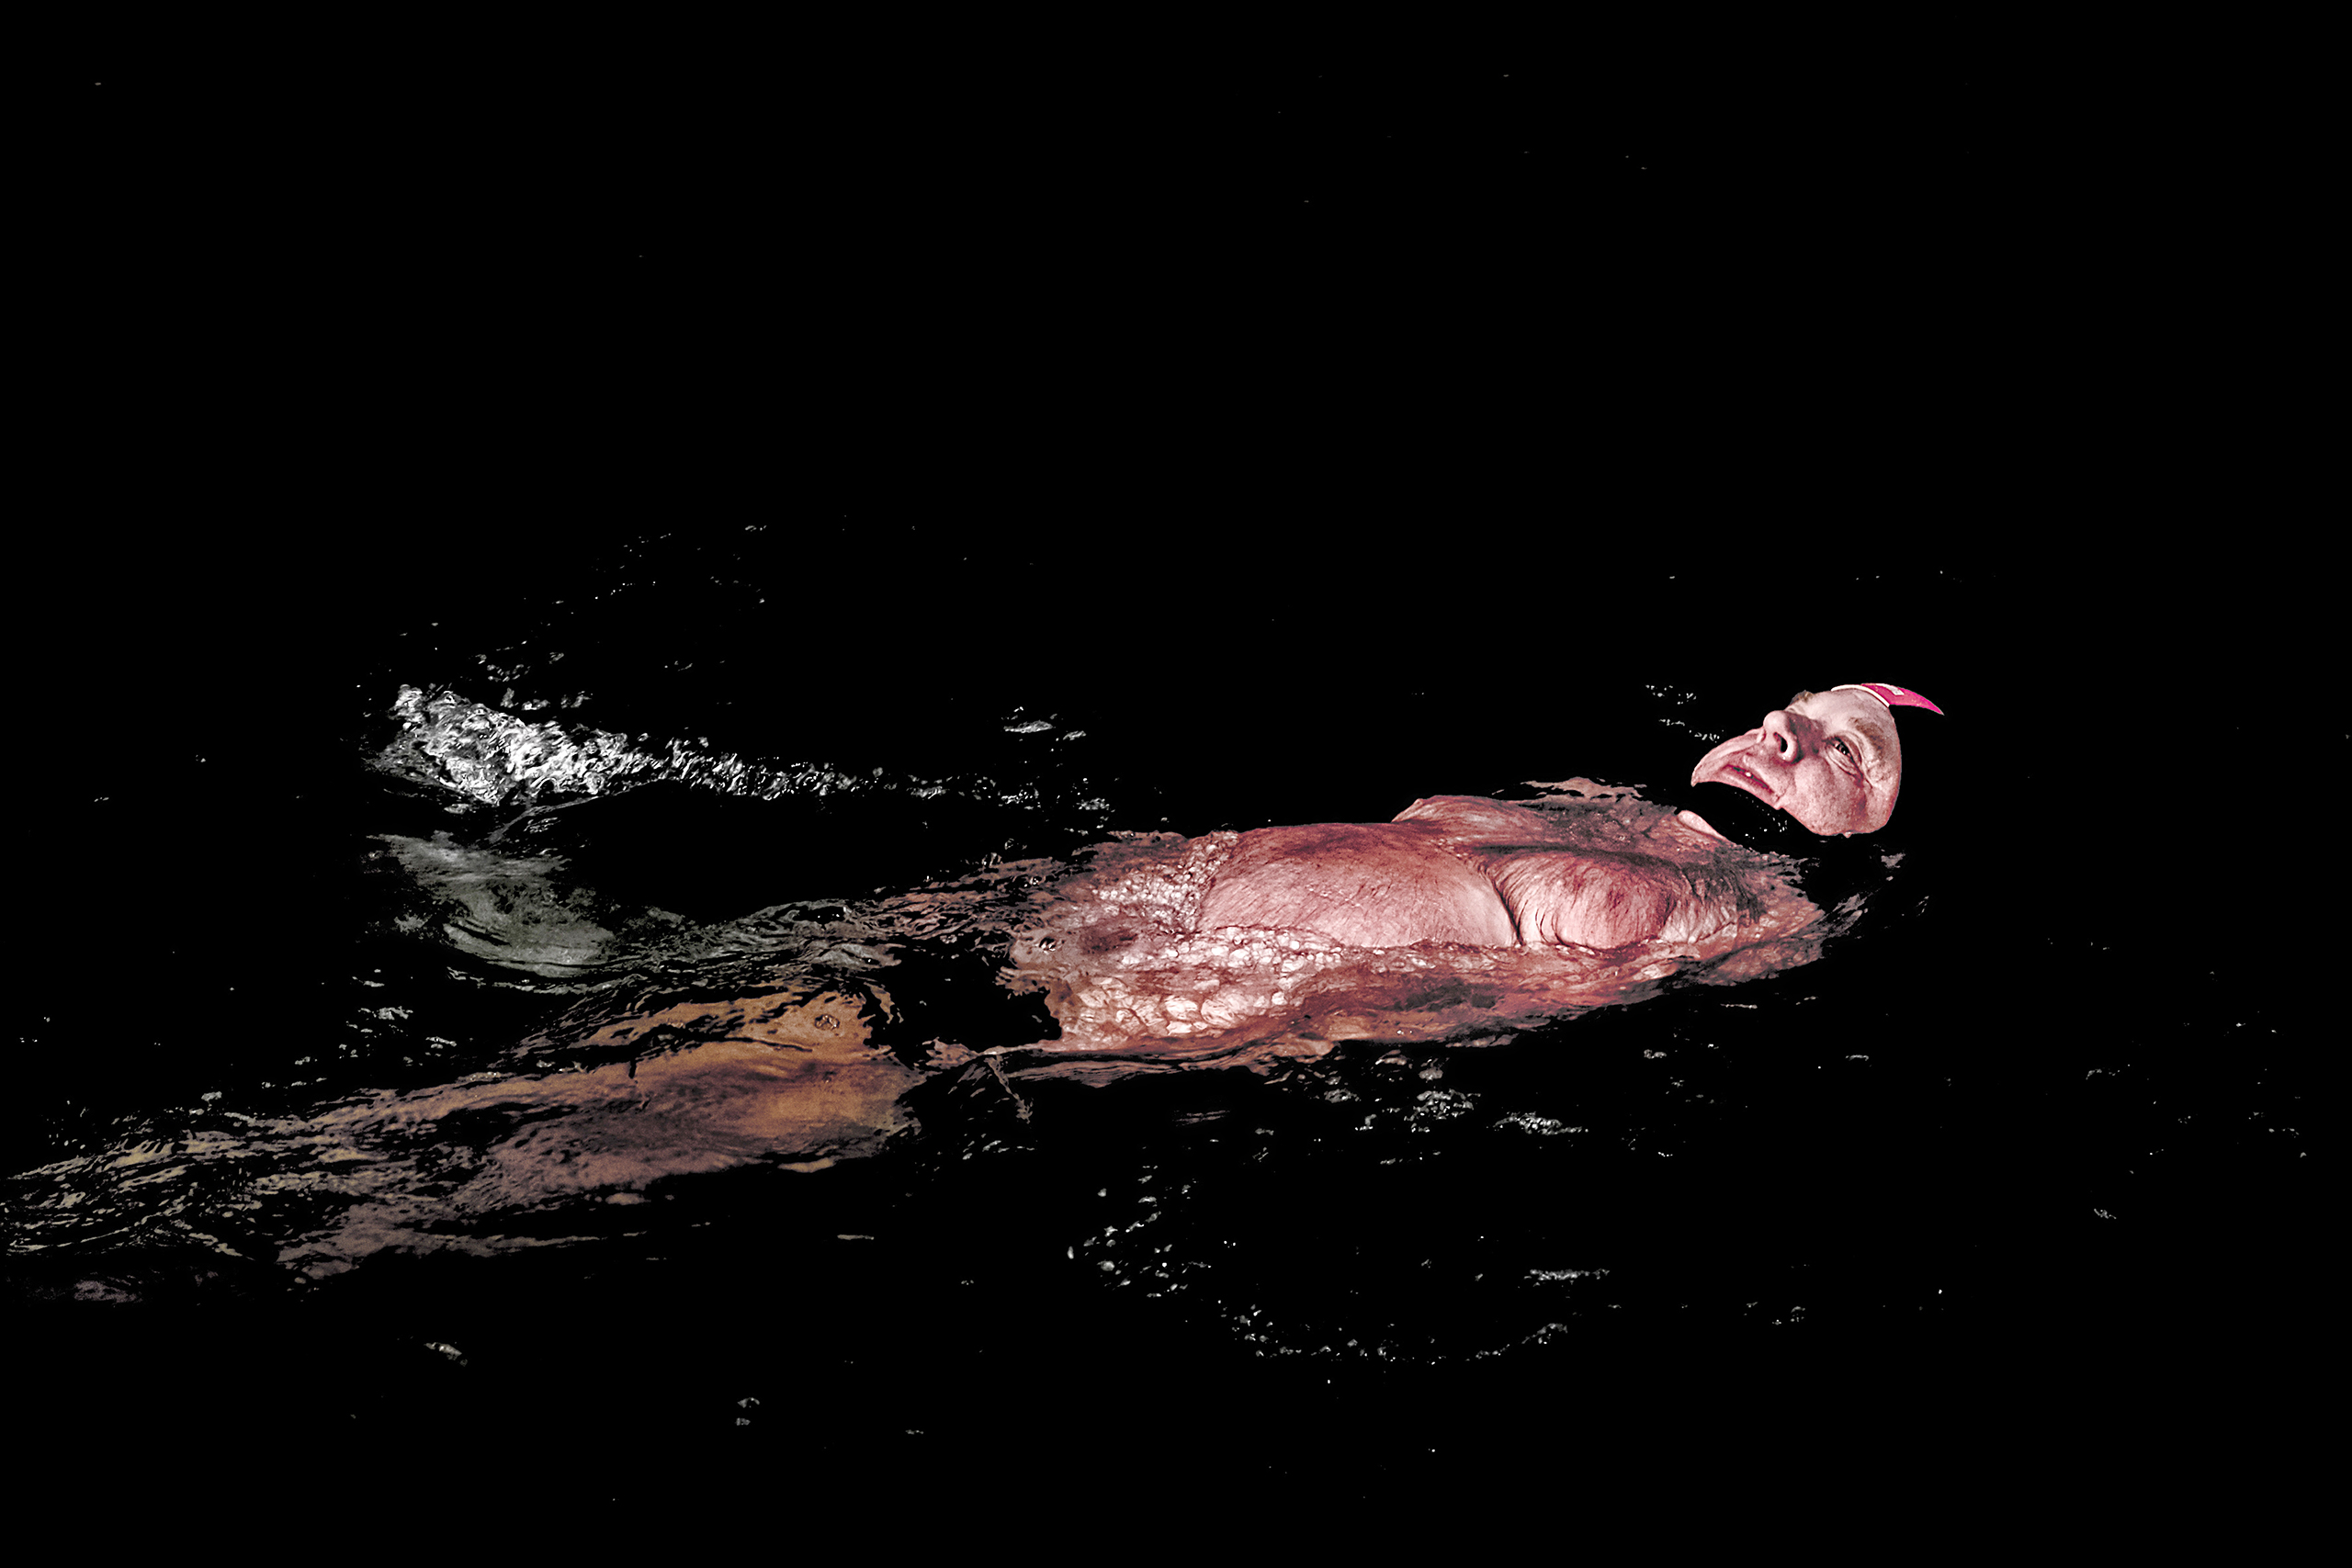 Backstroke is often more comfortable for some cold water swimmers. This one is pictured in the Orlice River on Dec. 10 2016.